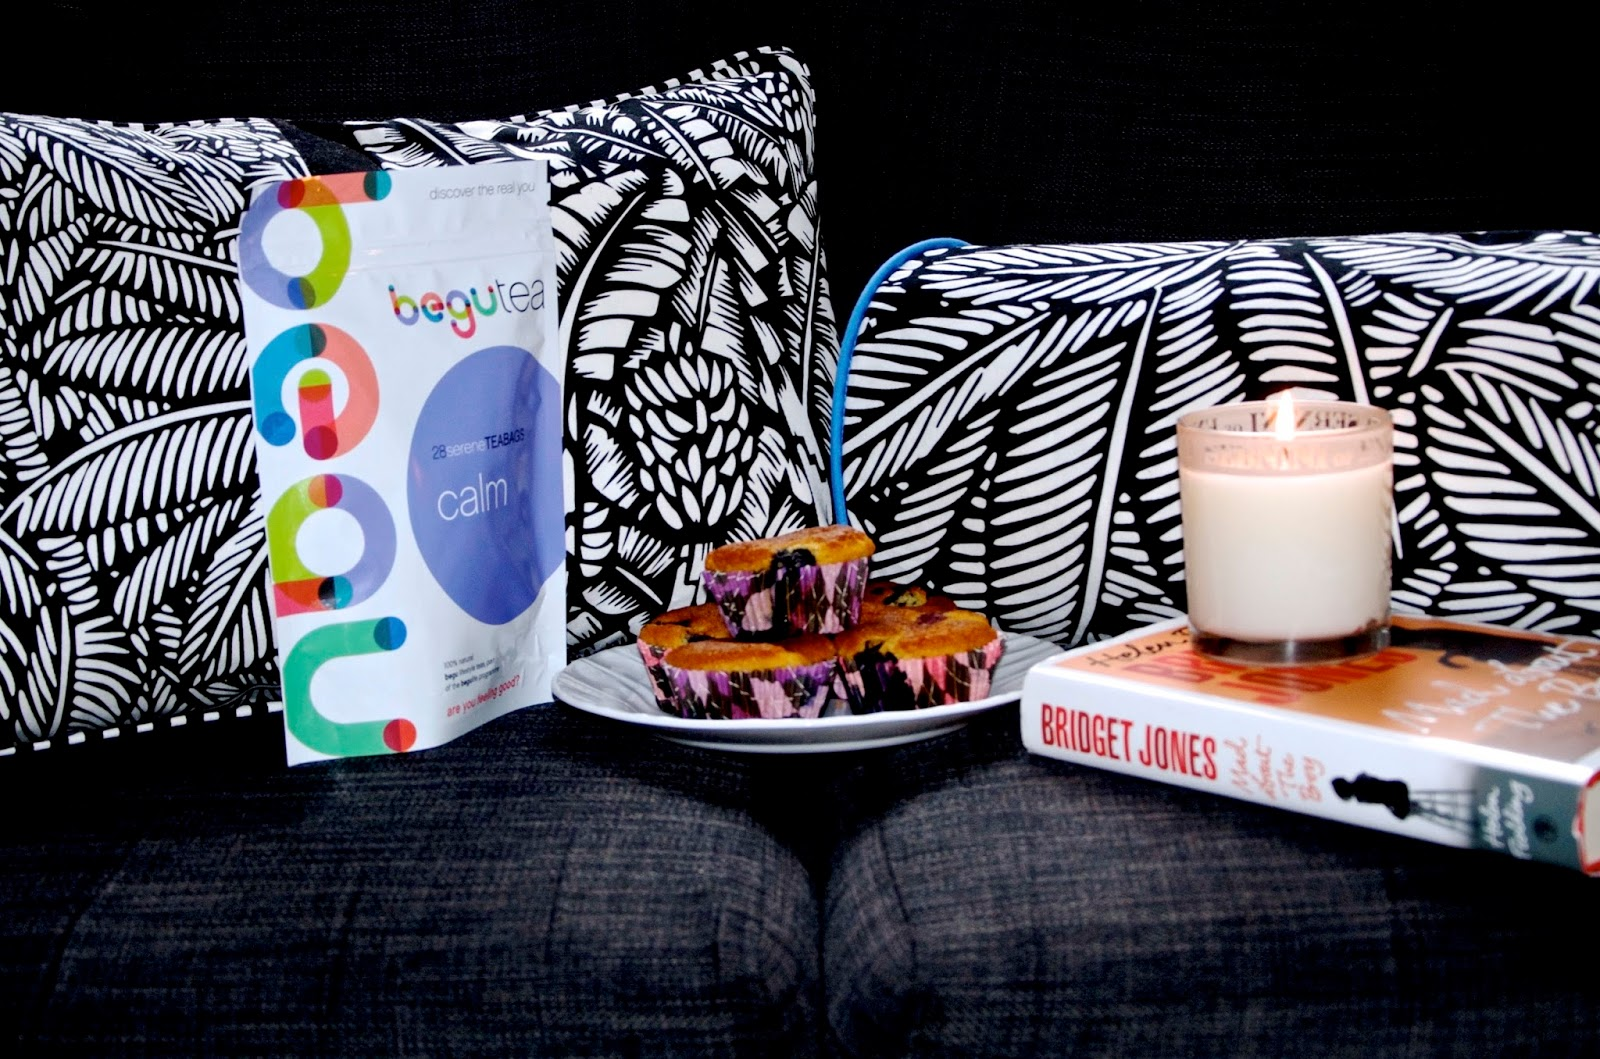 leaf print cushions, tea, blueberry muffins, bridget jones book, candle